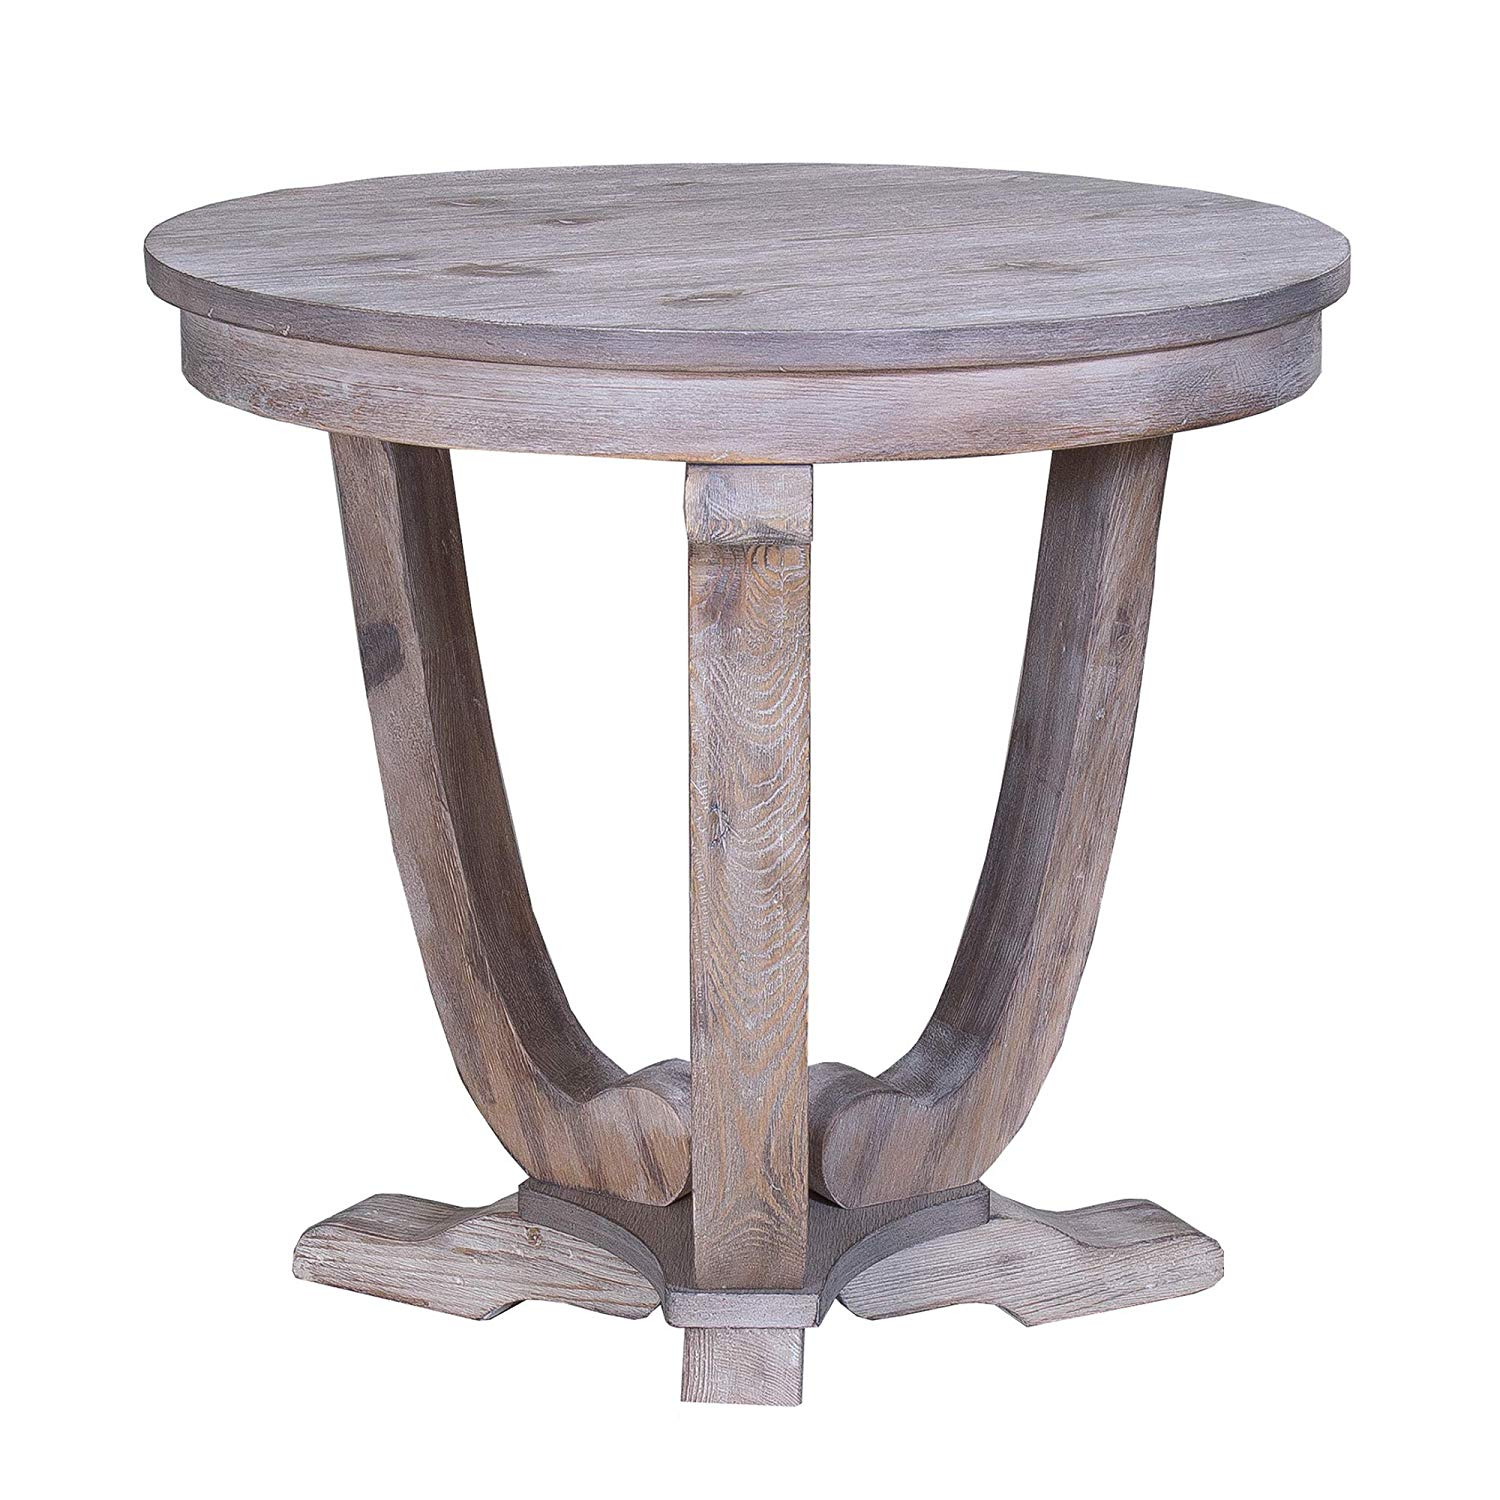 liberty furniture greystone mill end table whitewash accent stone white wash finish with wire brushed kitchen dining square patio seater swing seat bunnings old lamp tables washer